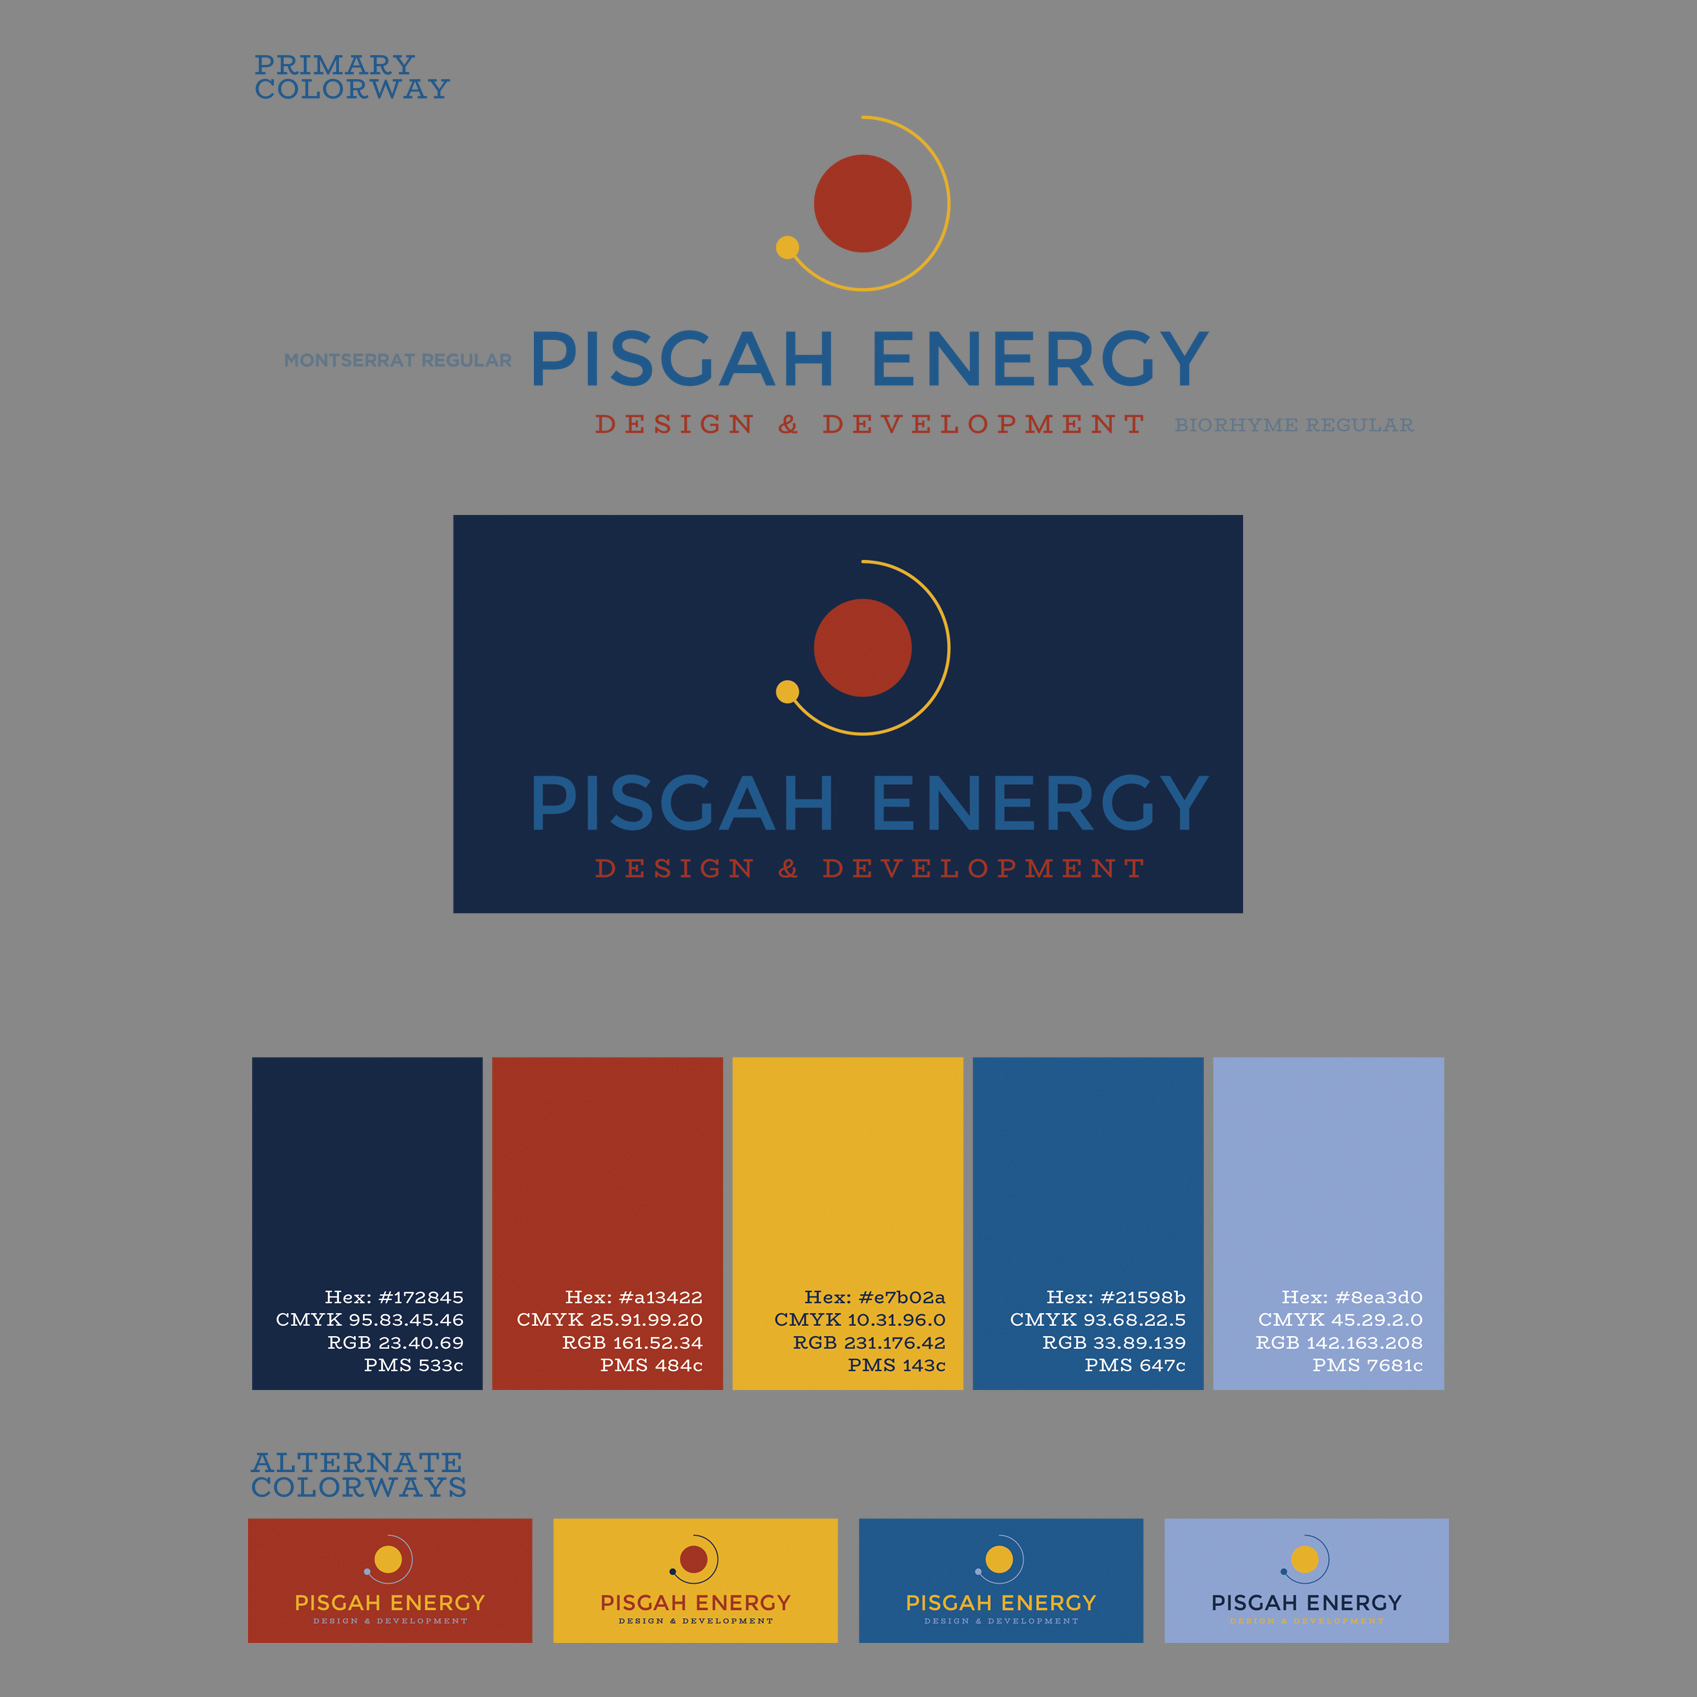 Logo Design Guidelines - Pisgah Energy